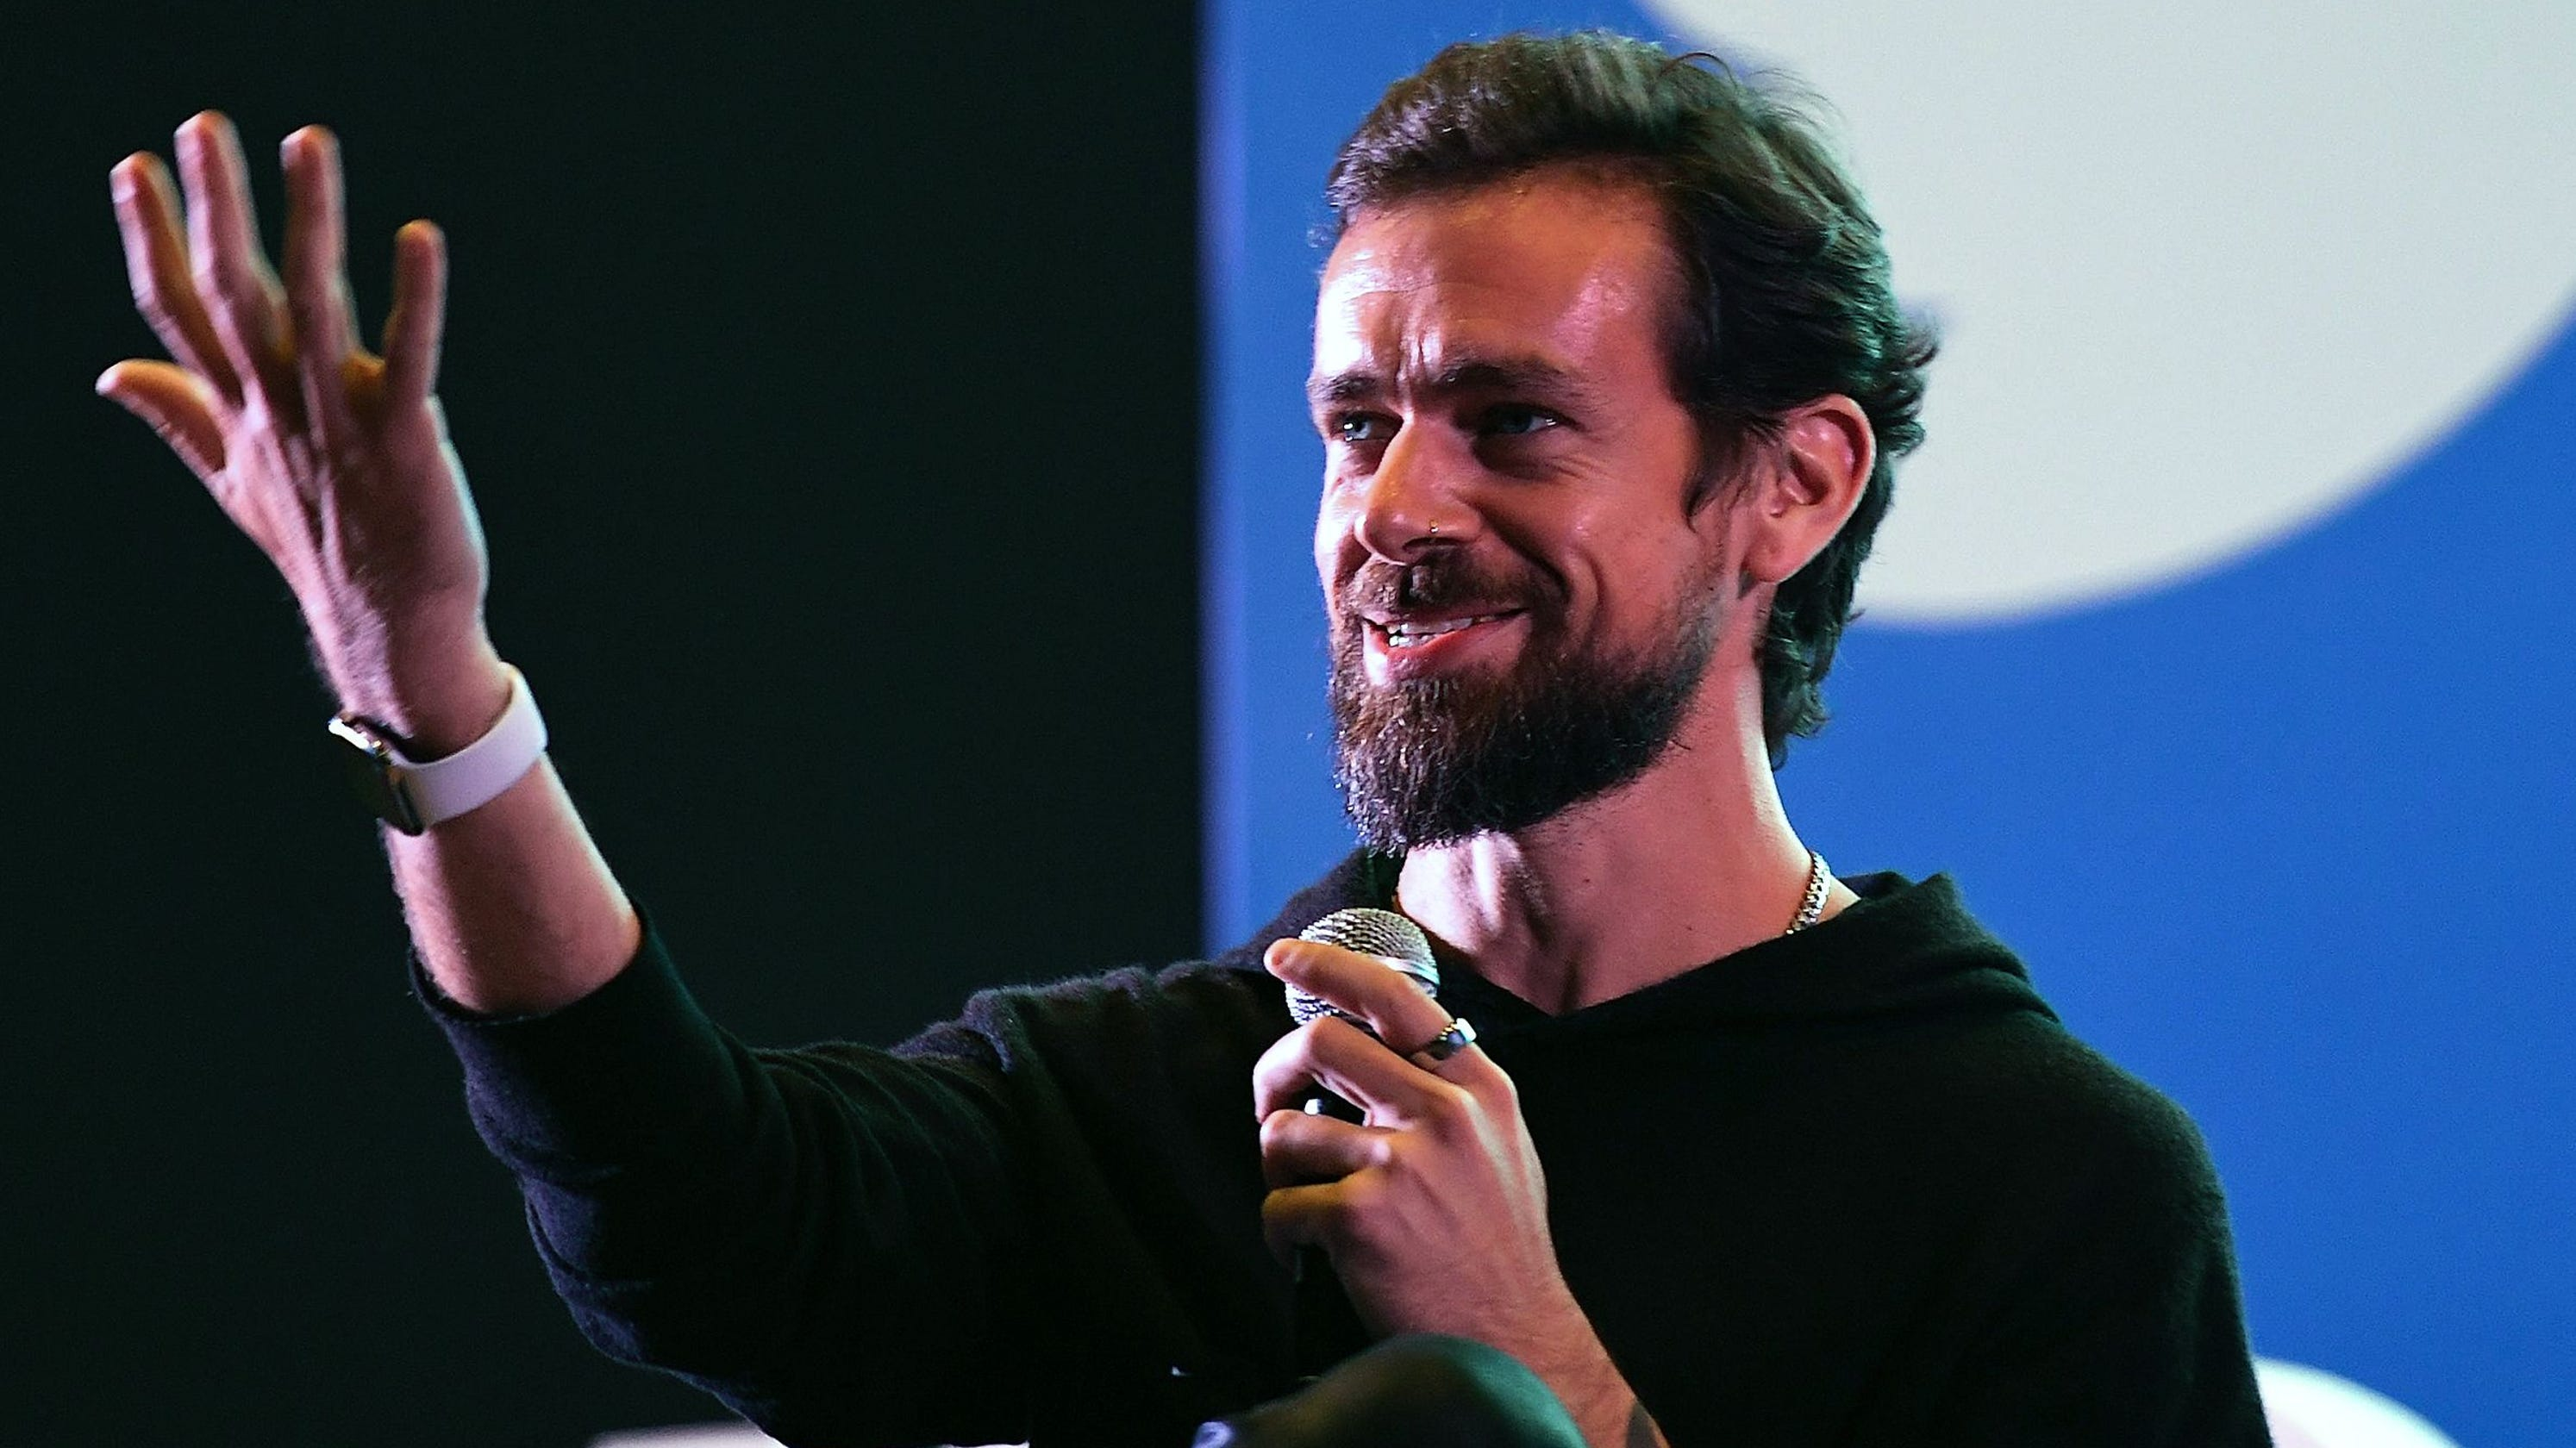 Twitter founder donates $10 million to new antiracism institute